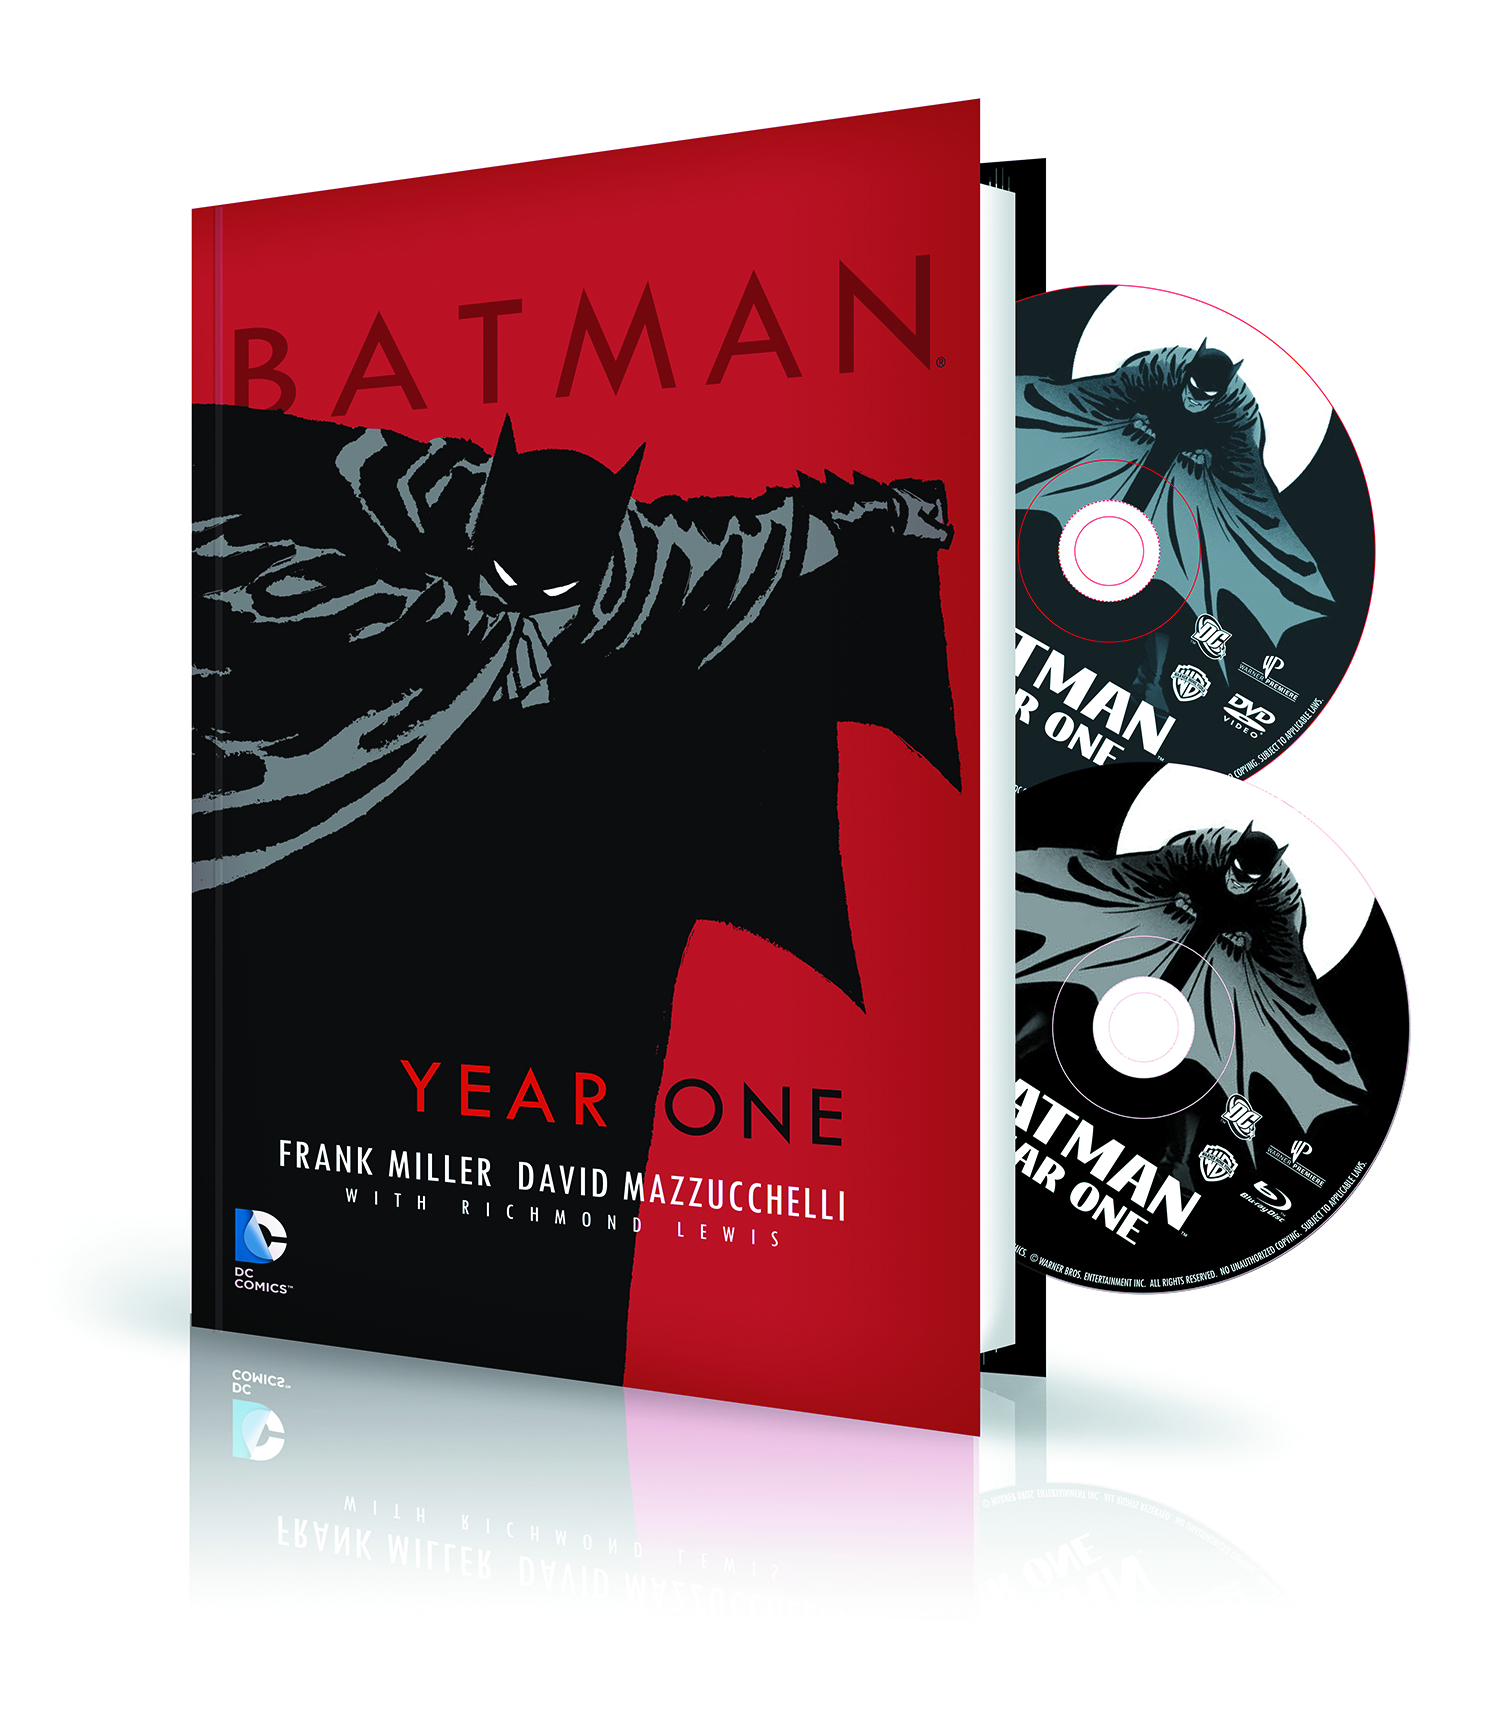 BATMAN YEAR ONE HC BOOK & DVD BLU RAY SET